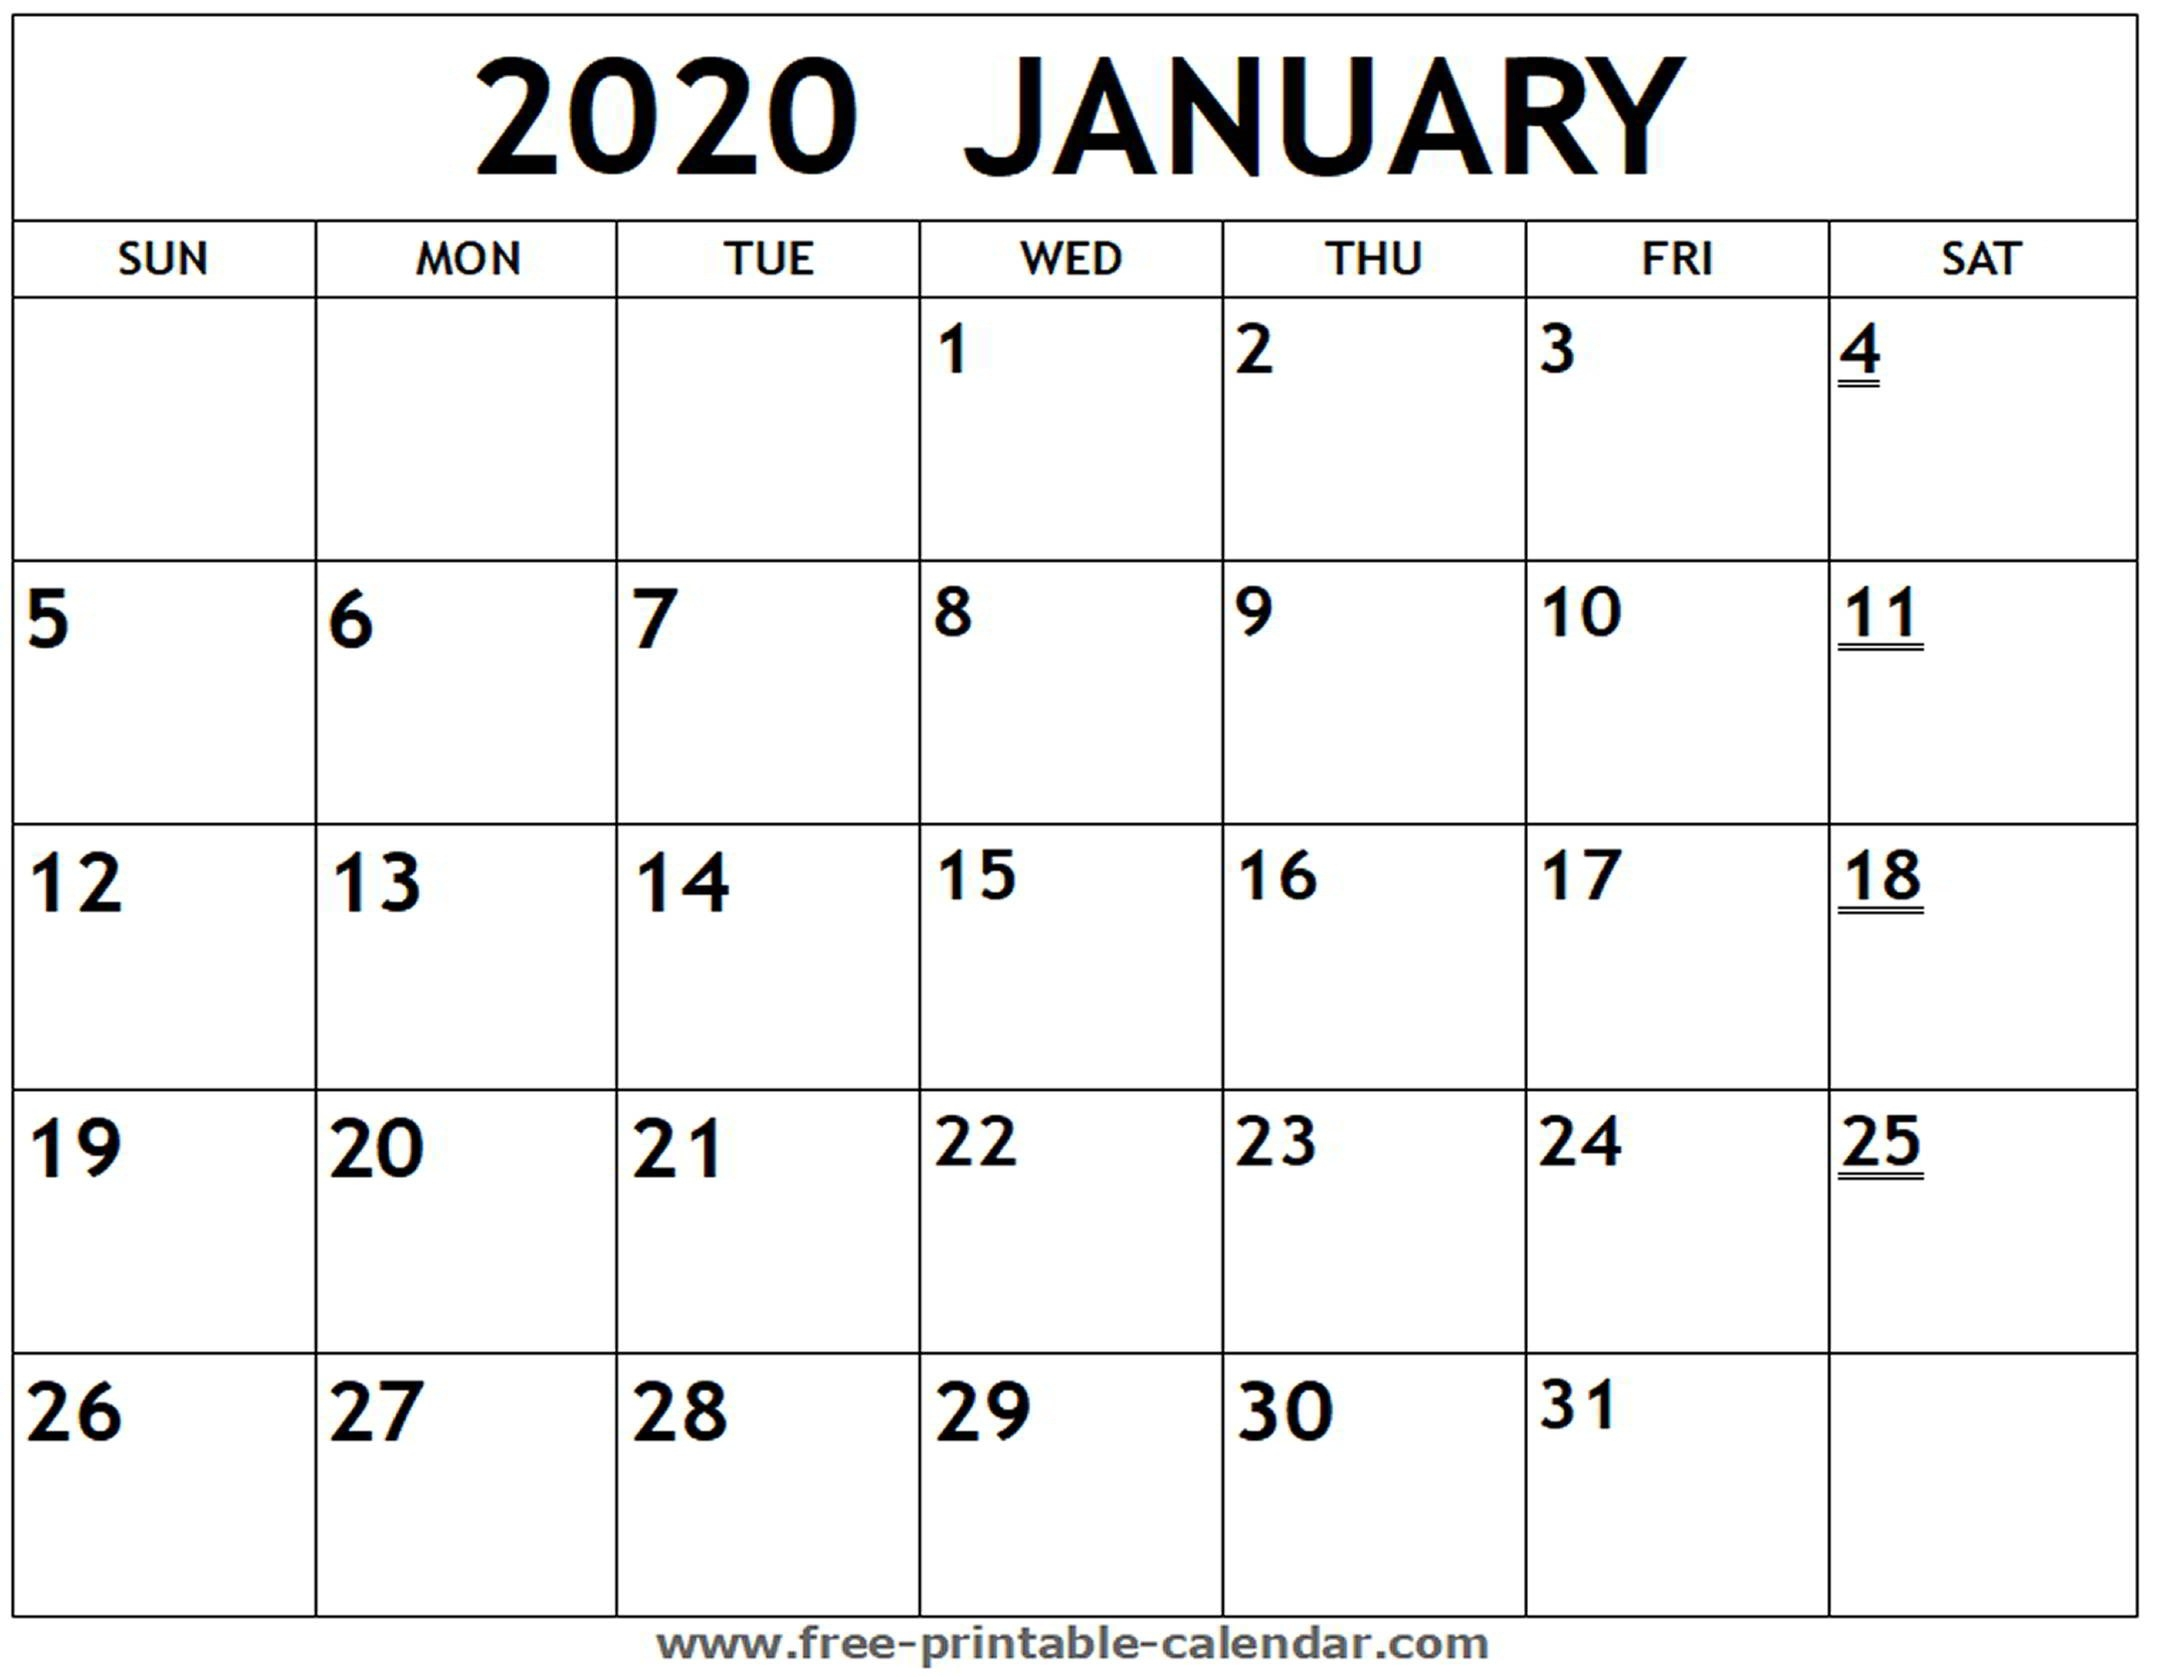 2020 Blank Calendar Monthly - Wpa.wpart.co-Blank 2020 Calendar Month By Month